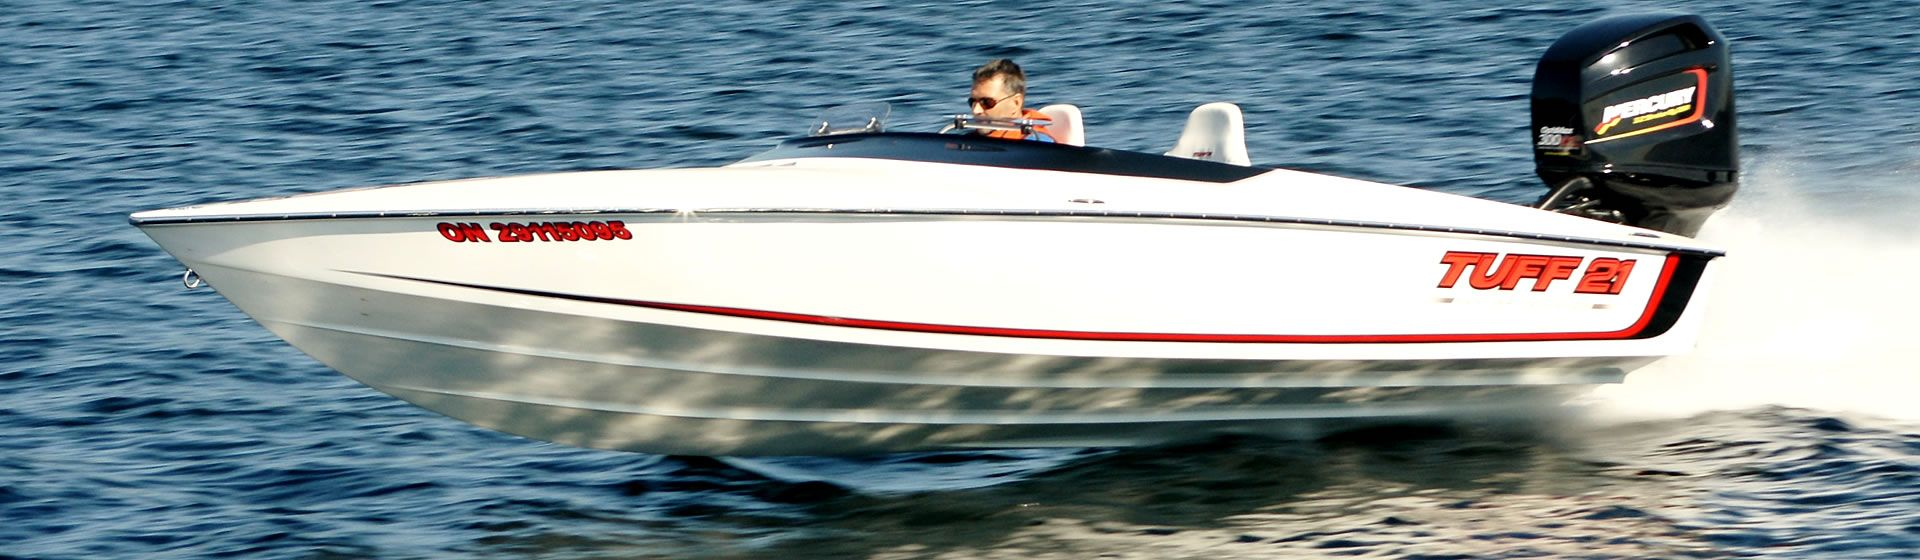 Light - Light builds allow the efficient hull to surpass 100 MPH with 300 HP.